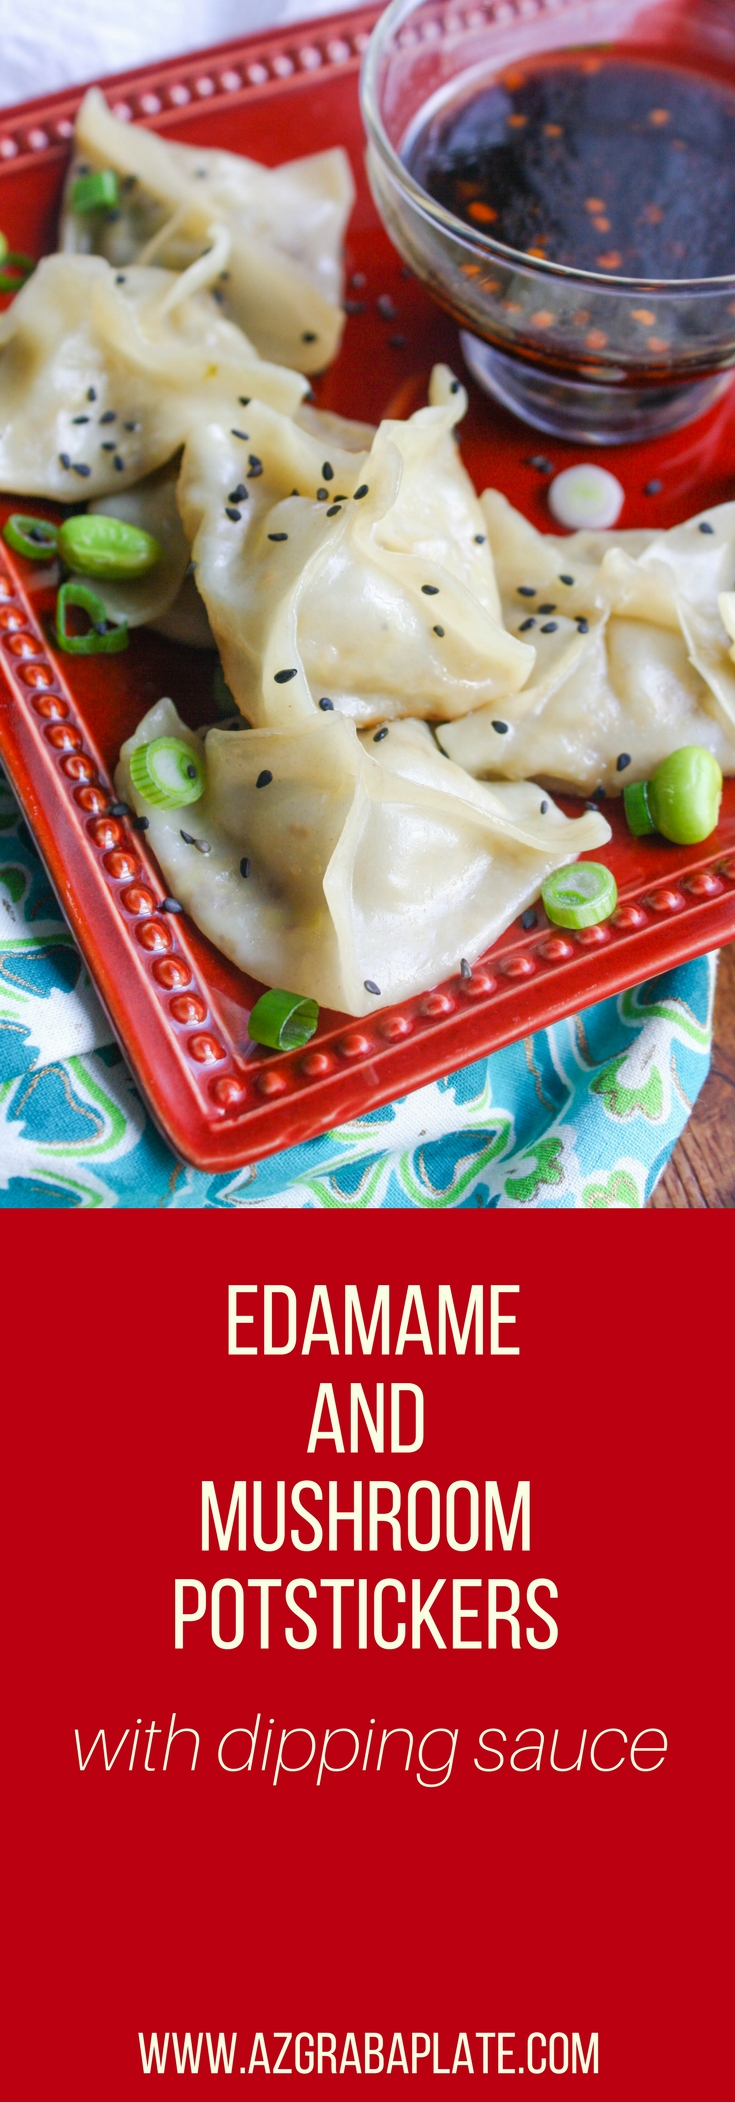 Edamame and Mushroom Potstickers with Dipping Sauce are fun little treats to make any night of the week. These potstickers and dipping sauce are great to serve at parties, too!